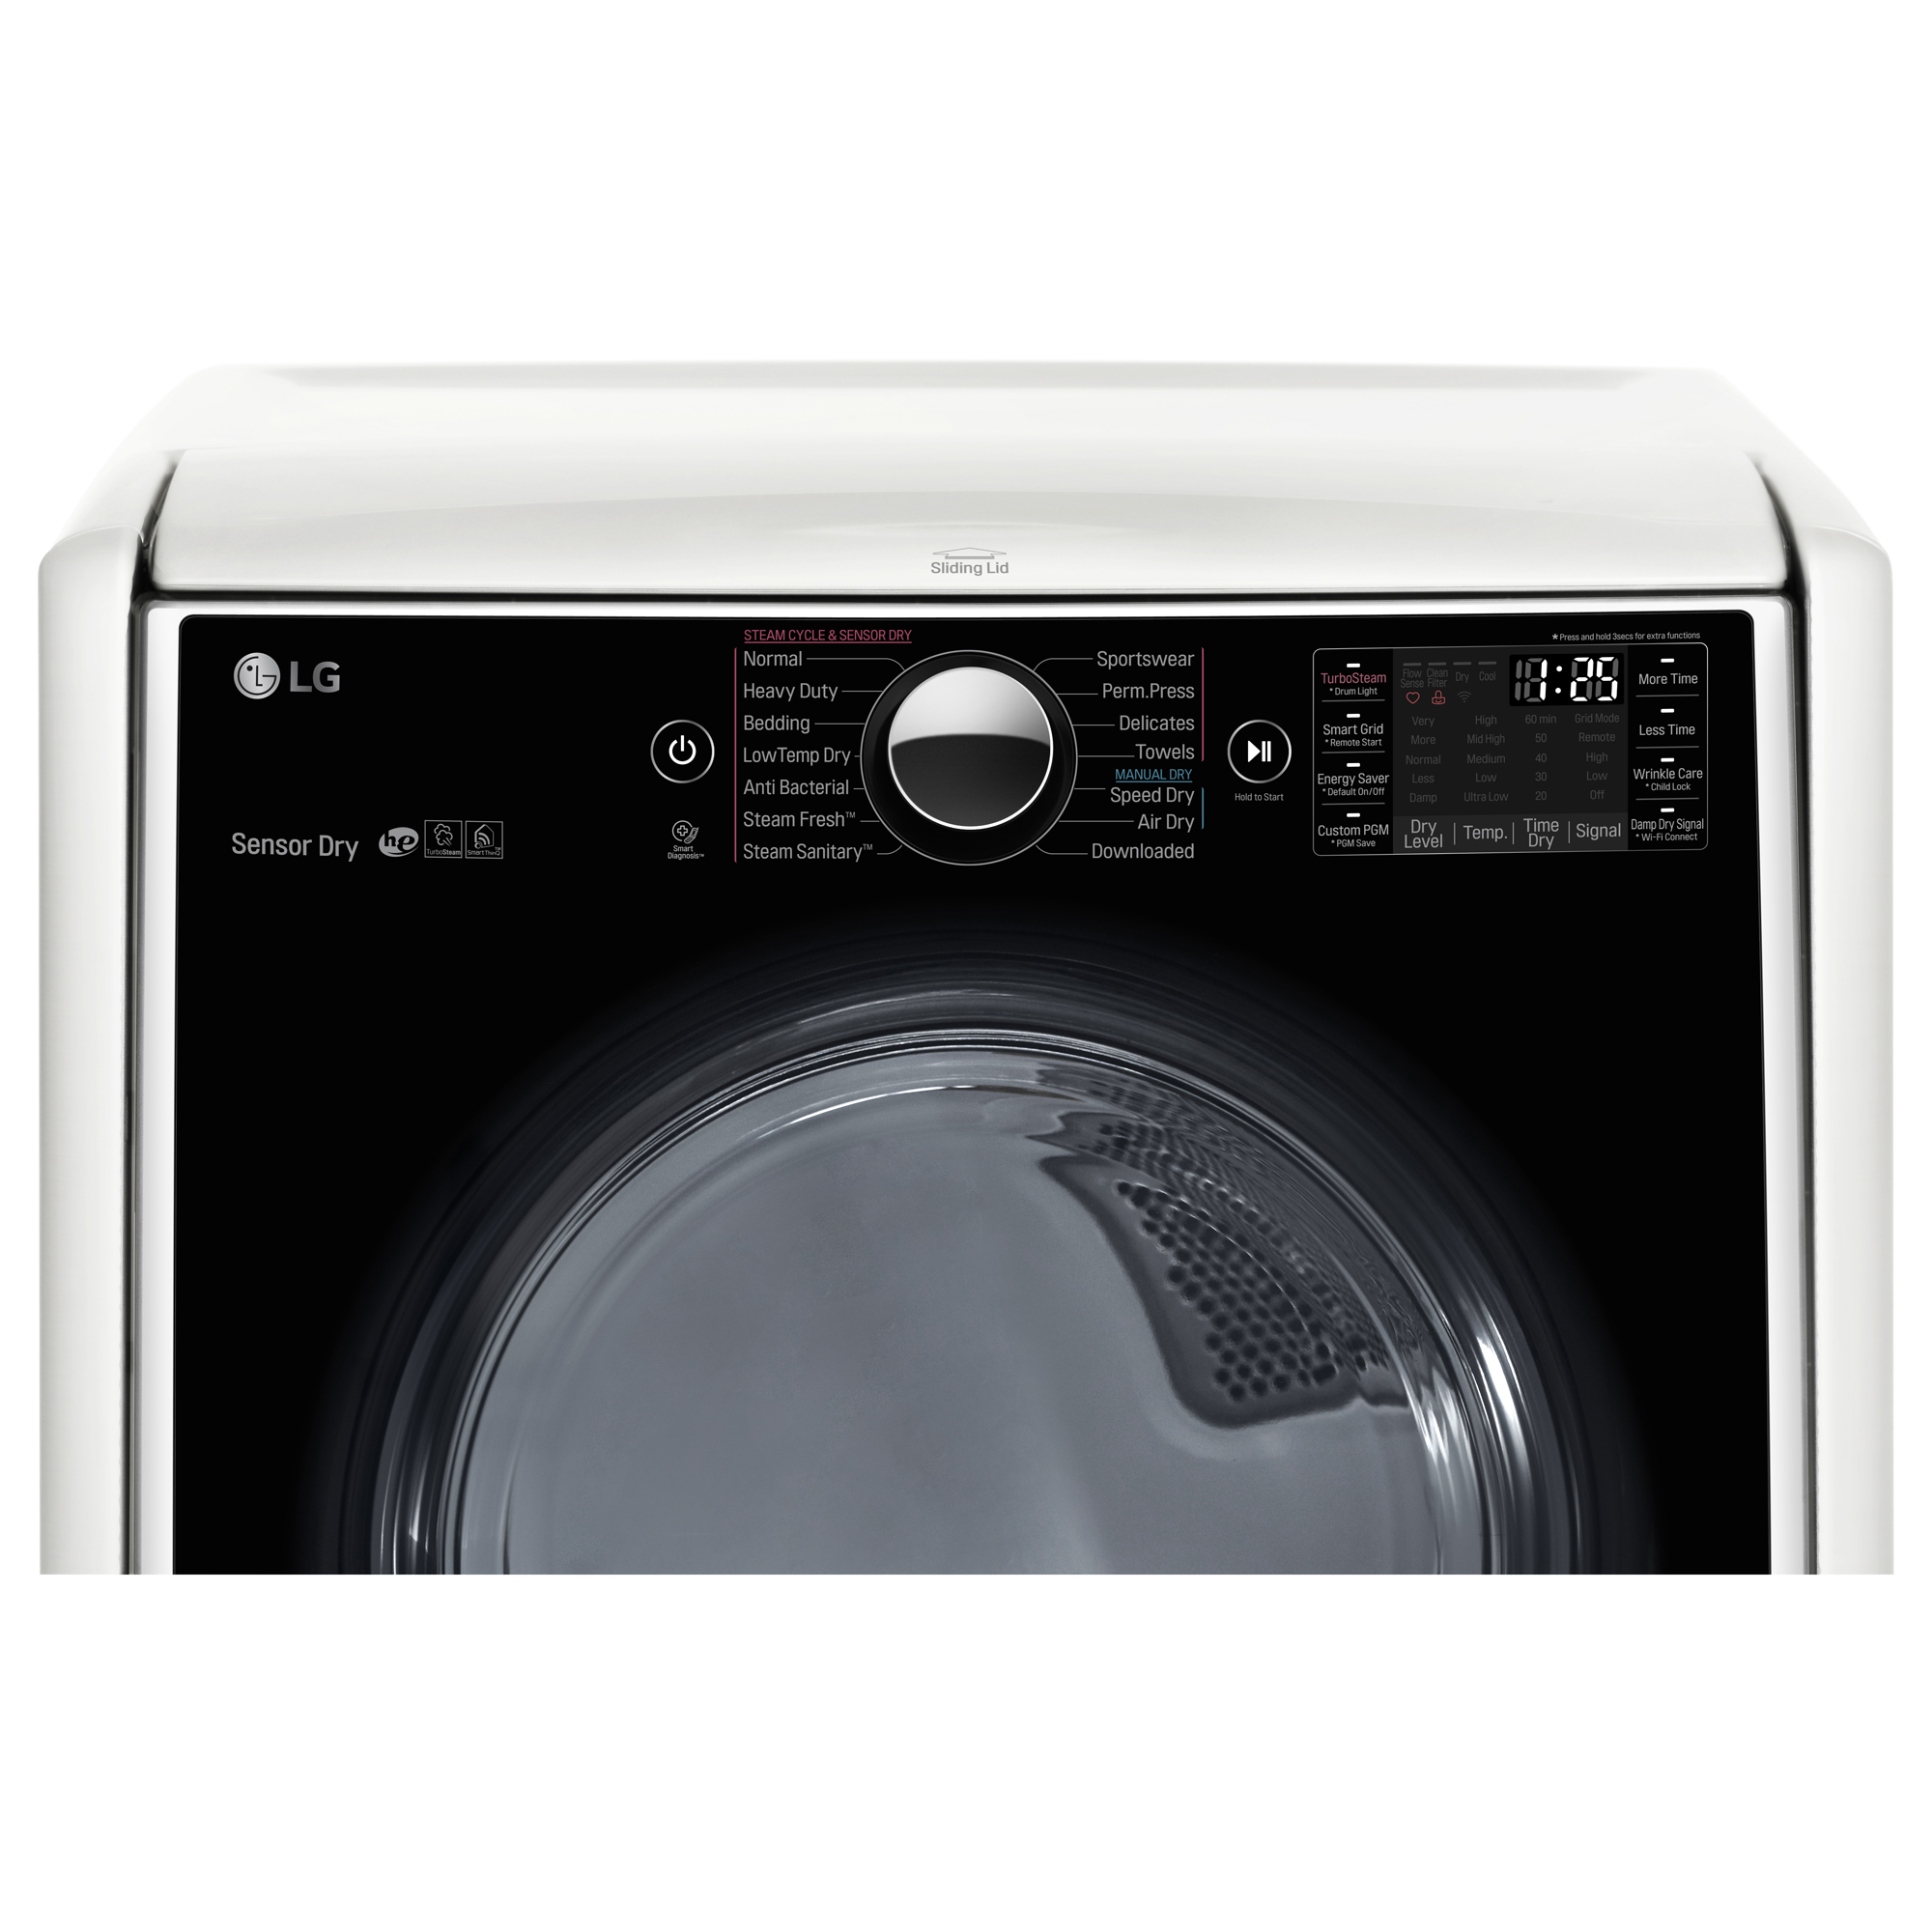 LG DLEX5000W 7.4 cu. ft. Electric Dryer w/ TurboSteam™ Technology – White